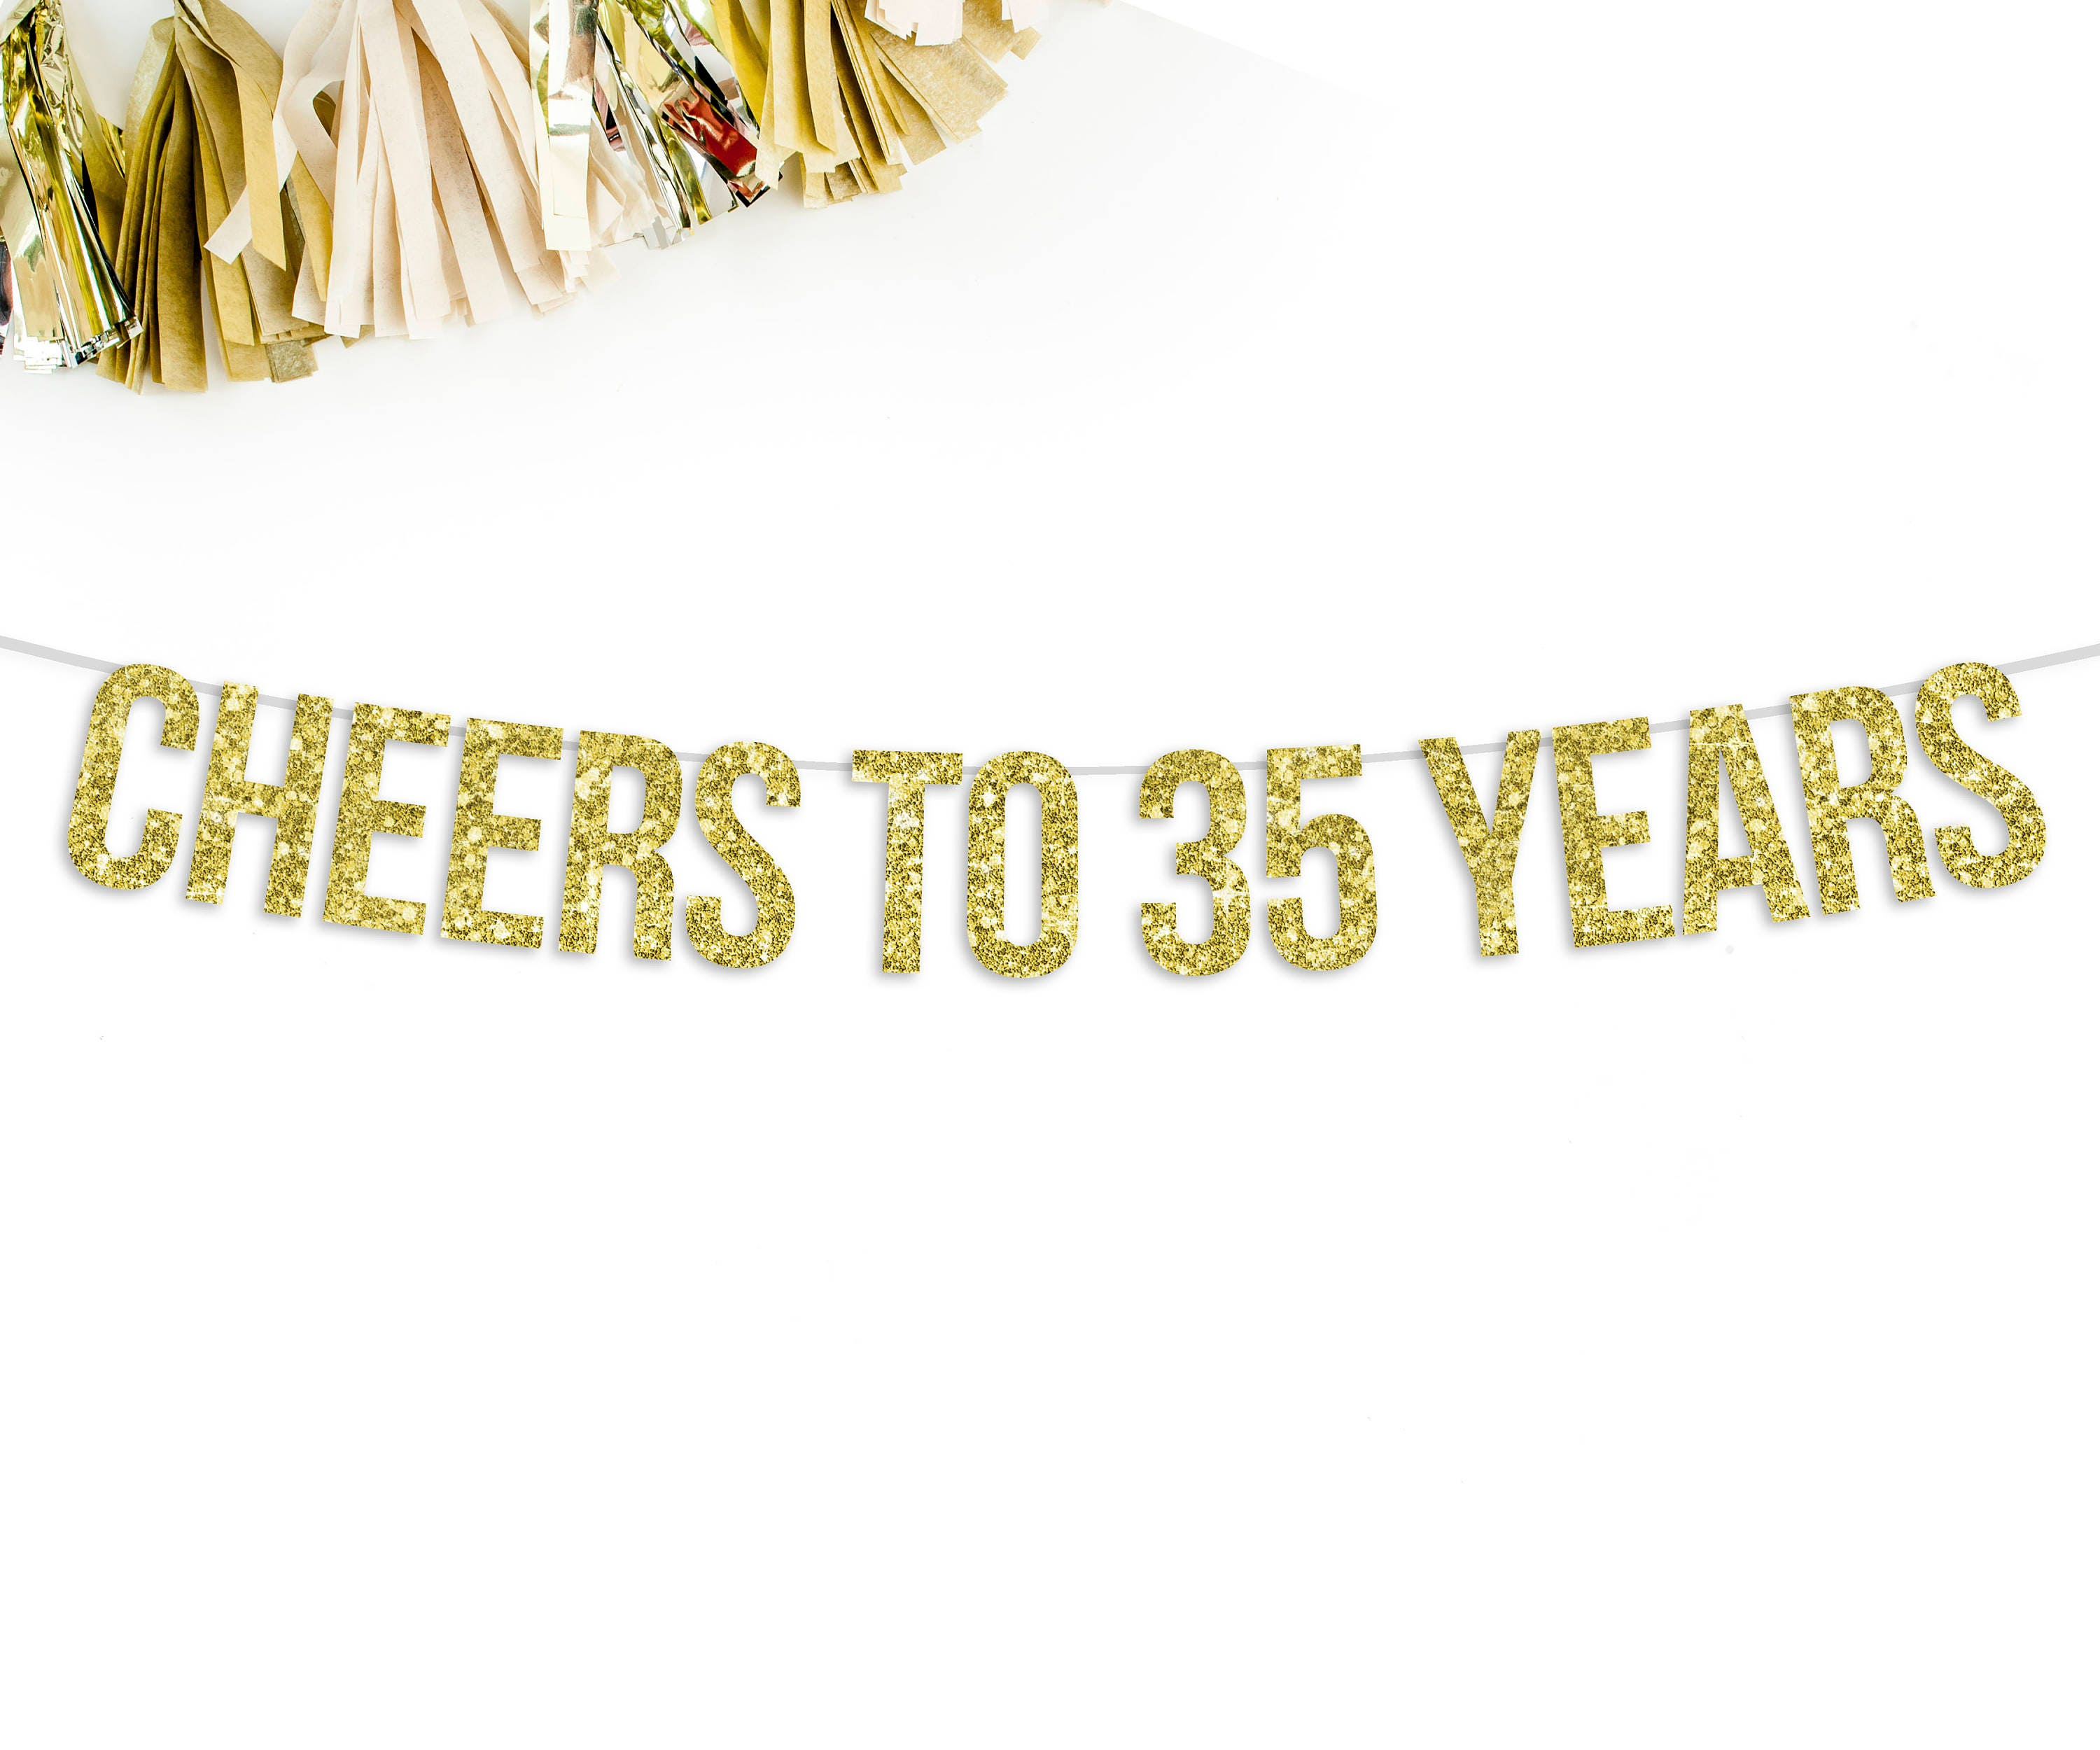 Wedding Anniversary 35 Years Gifts: Cheers To 35 Years Banner 35th Wedding Anniversary Party